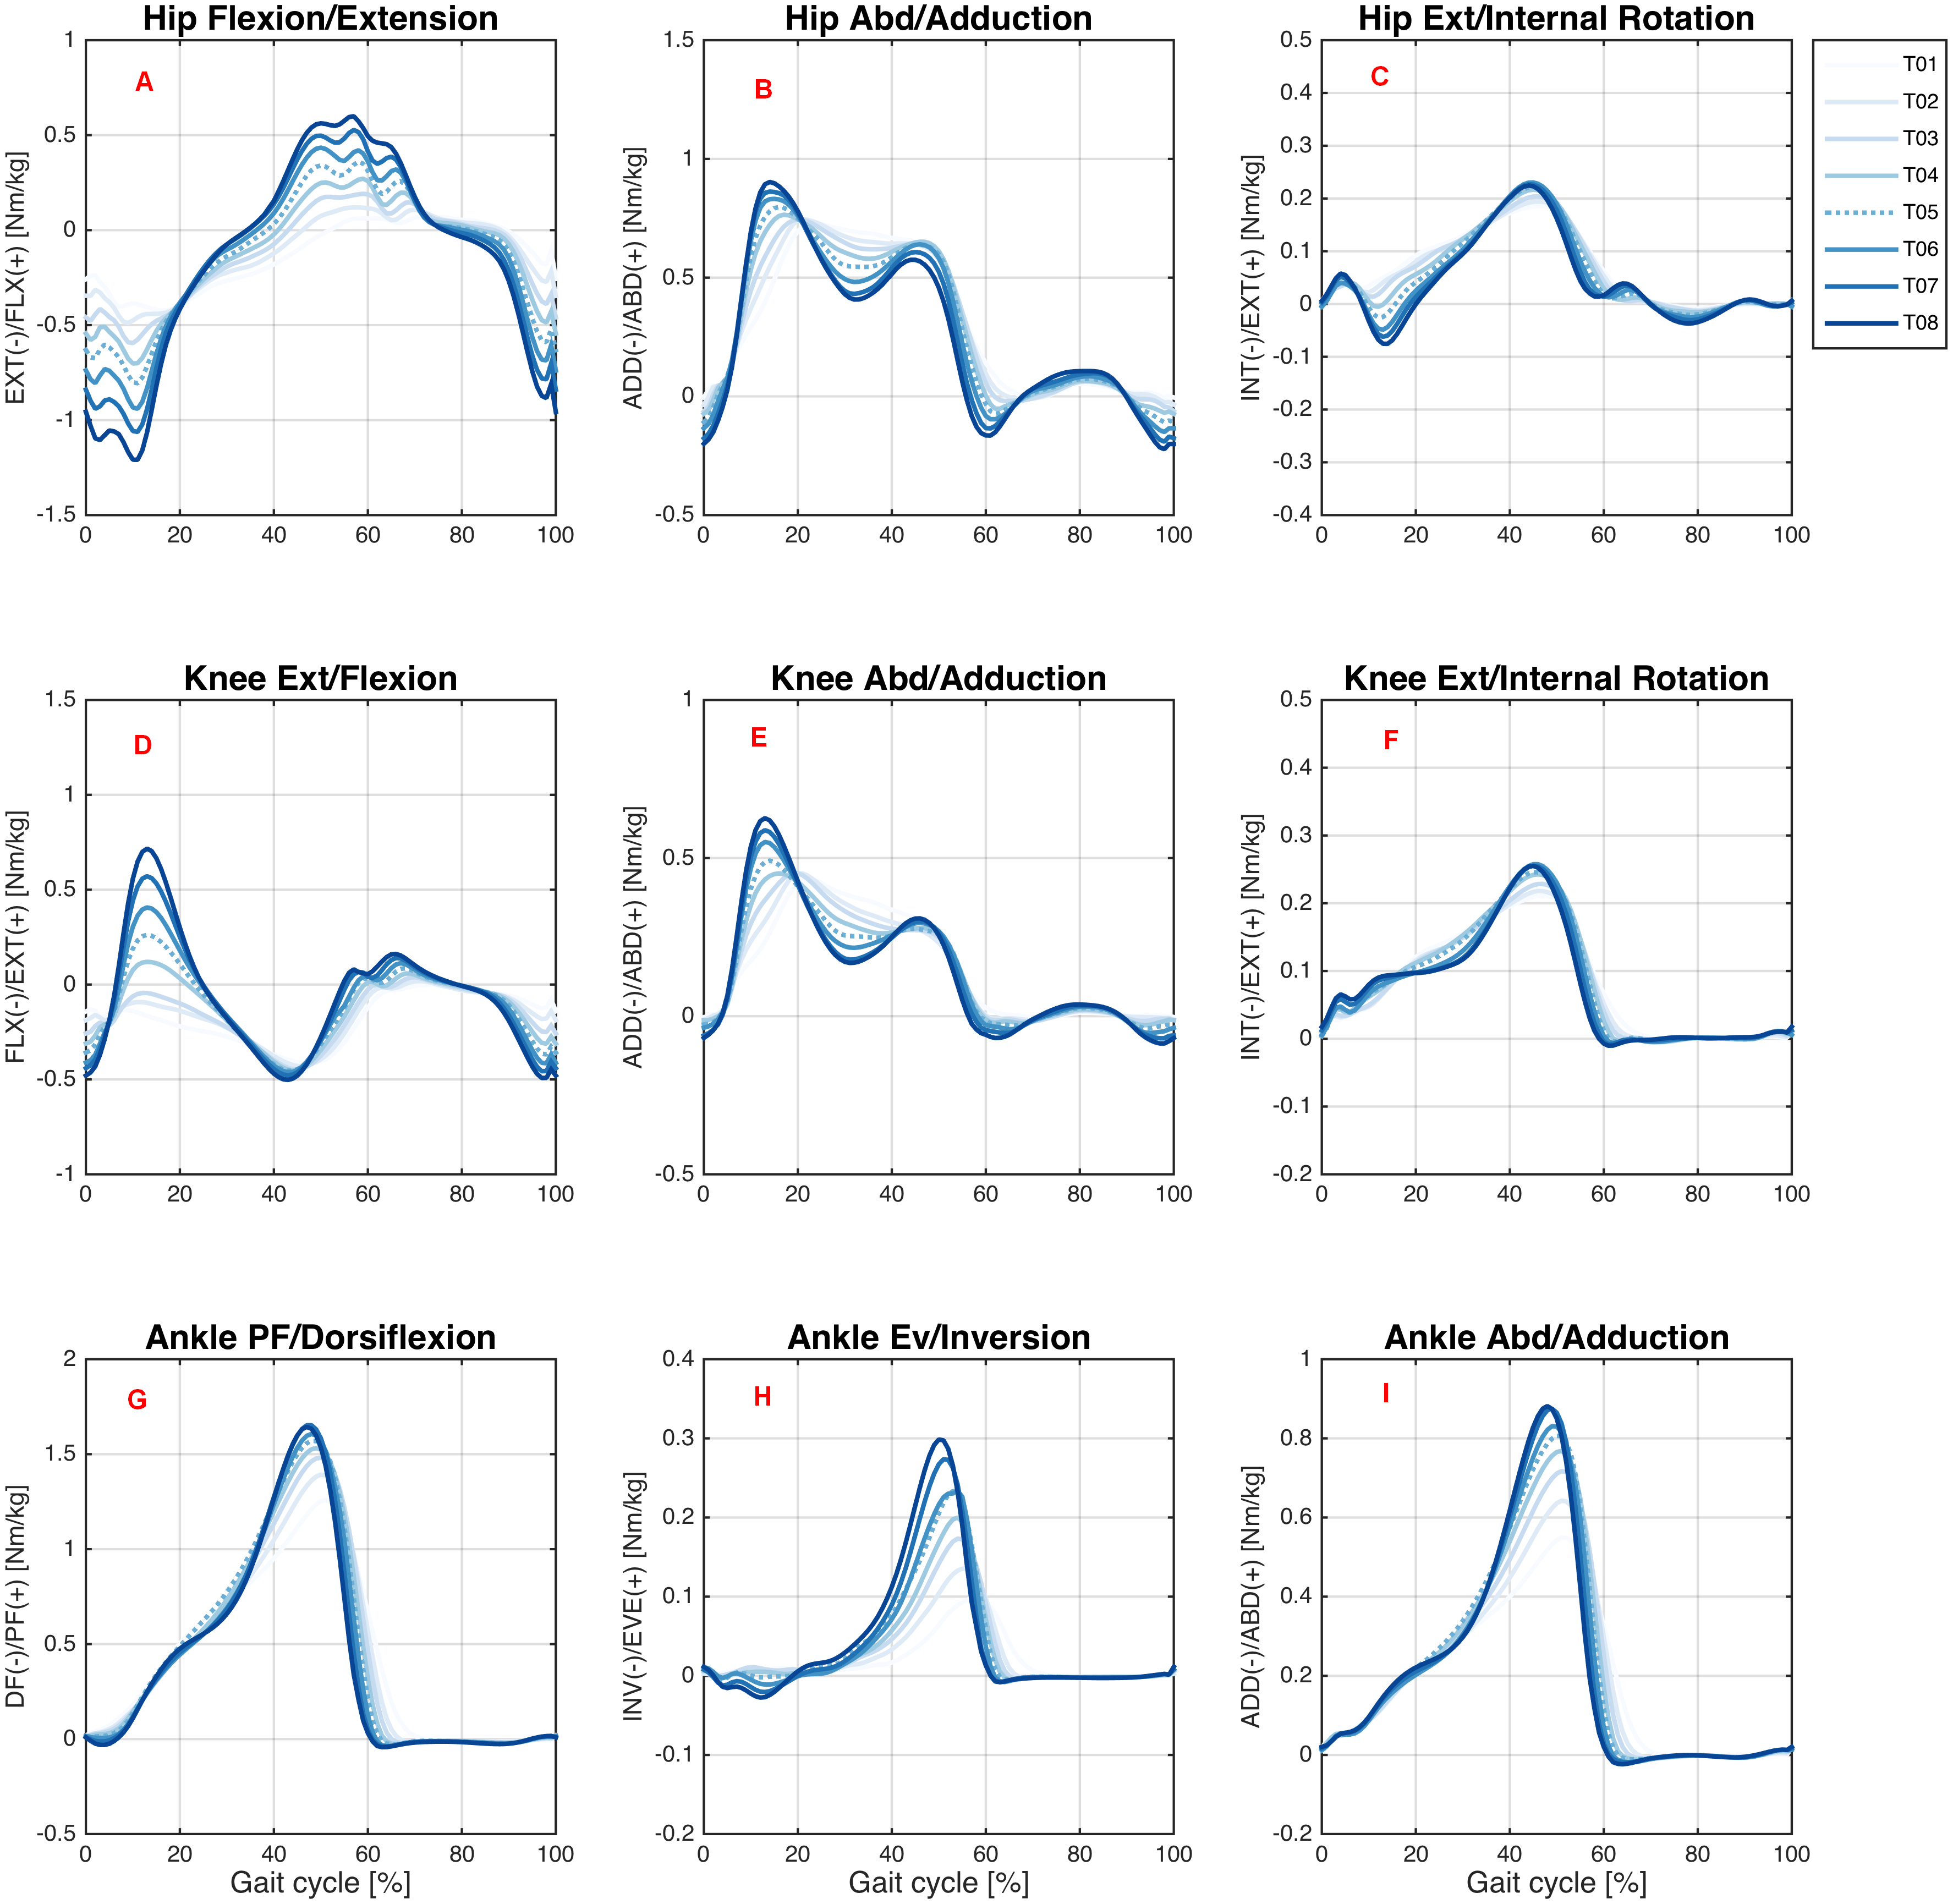 A public dataset of overground and treadmill walking